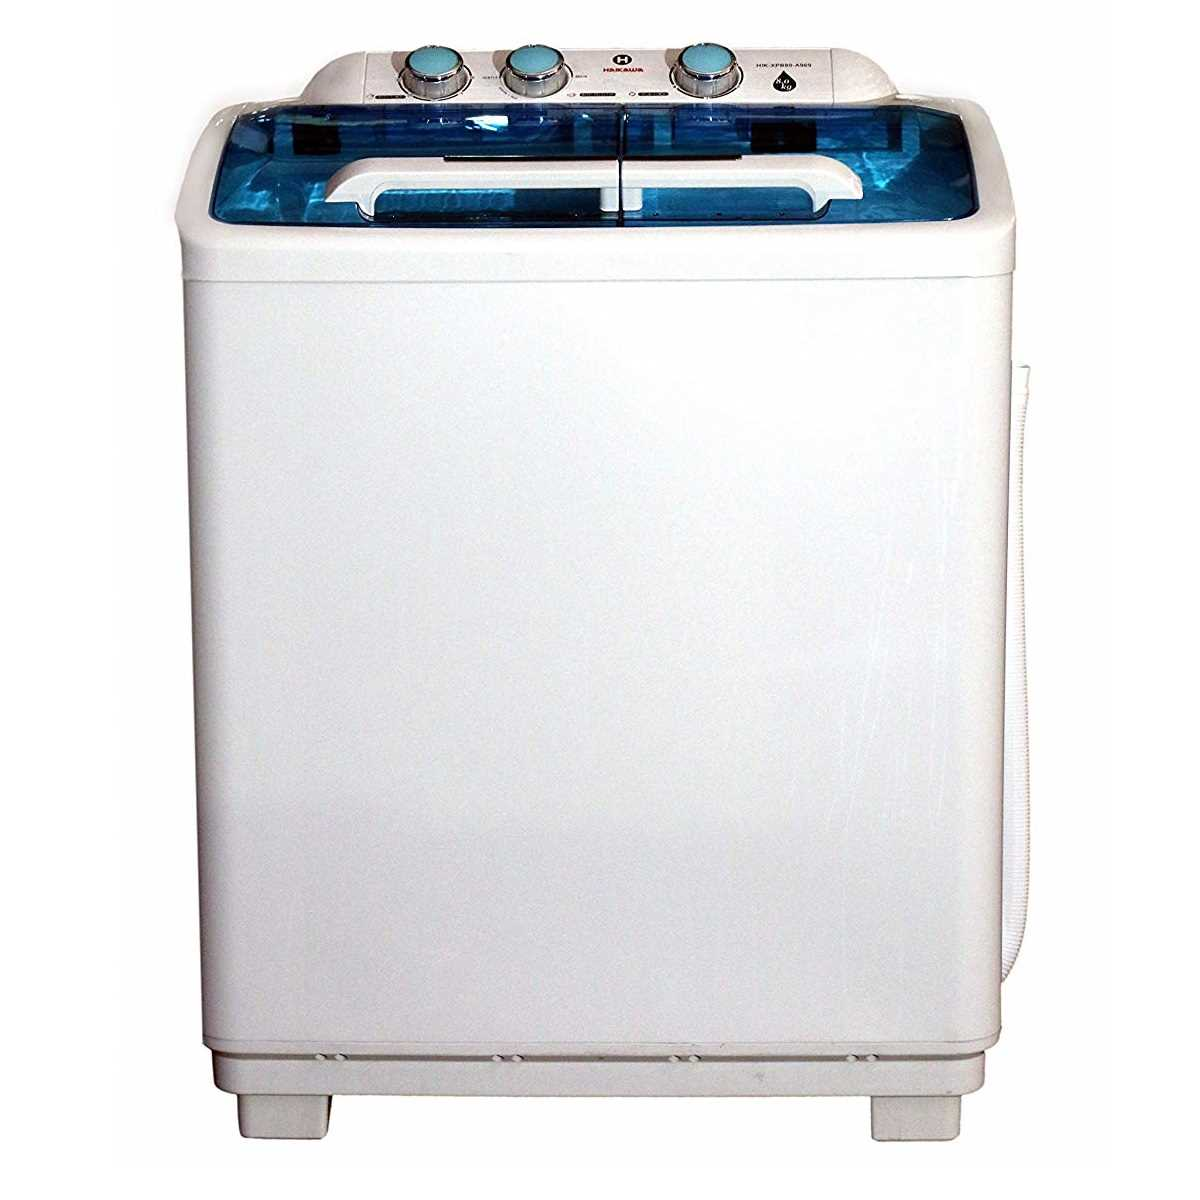 Haikawa HIK-XQB80-A969 8 Kg Semi Automatic Top Loading Washing Machine